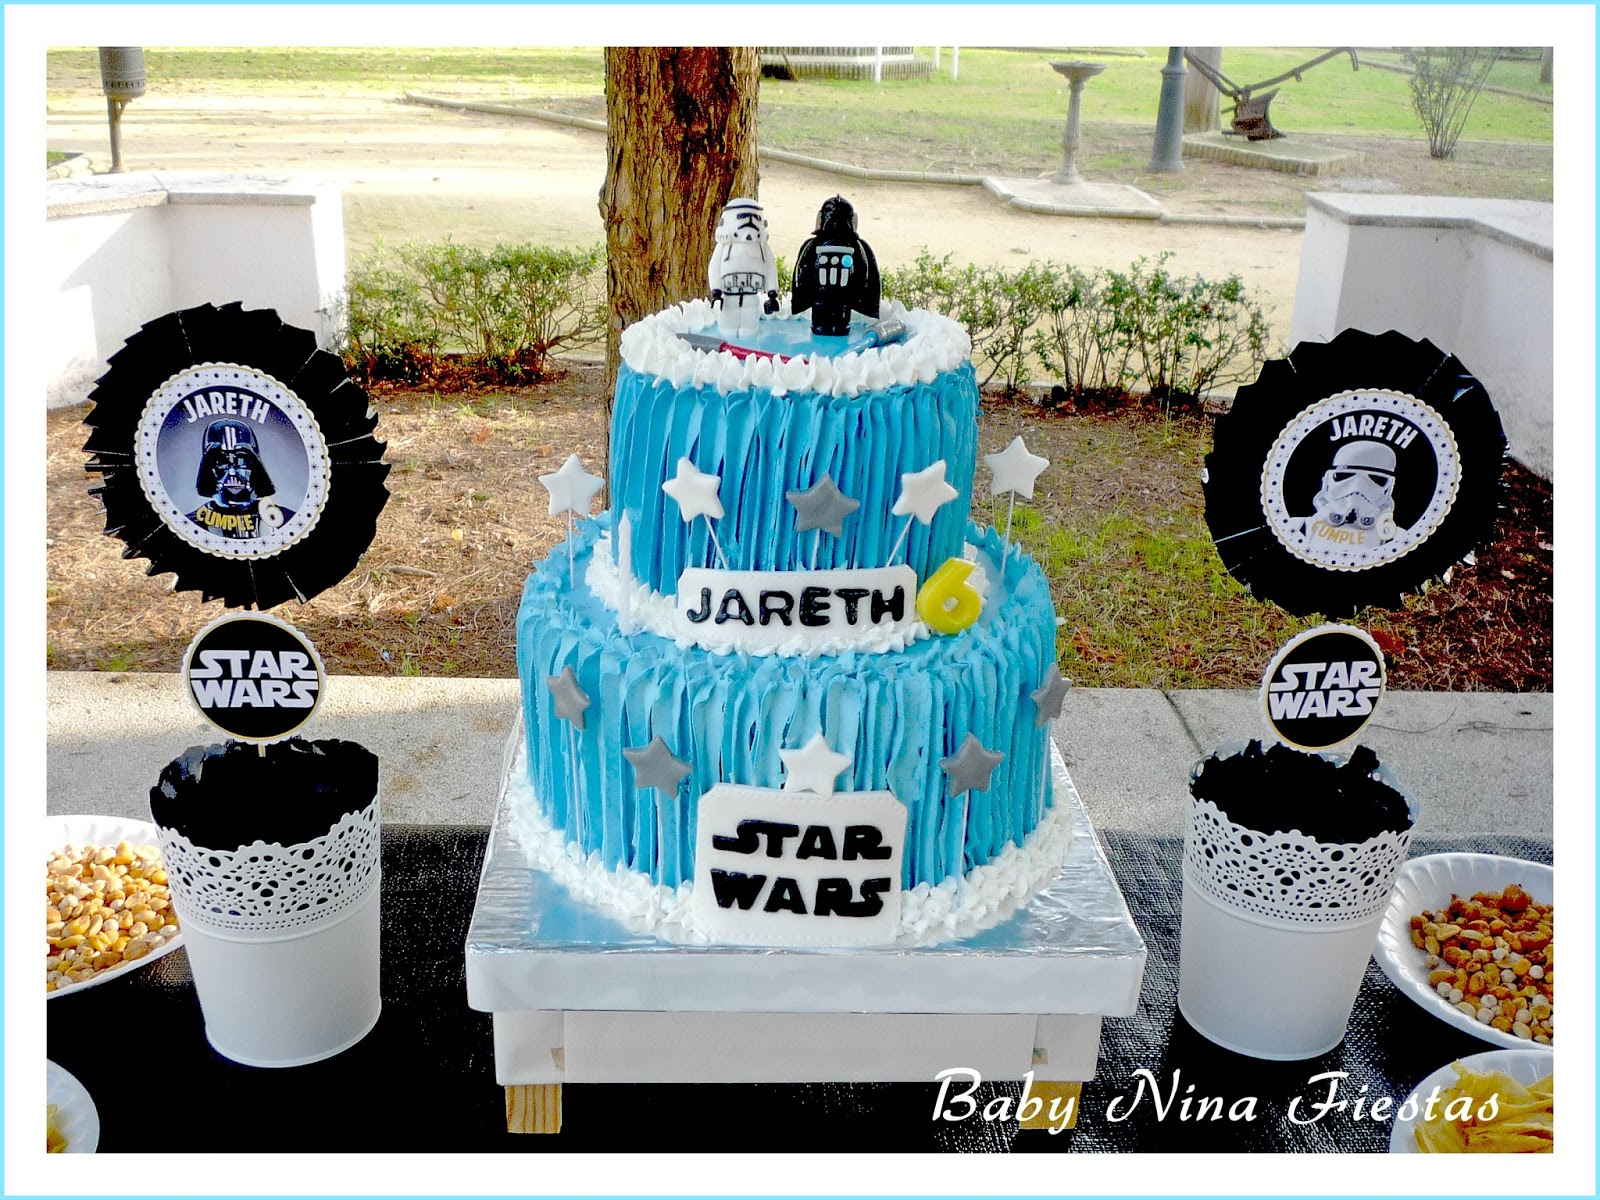 Baby nina fiestas cumple star wars para jareth for Decoracion star wars